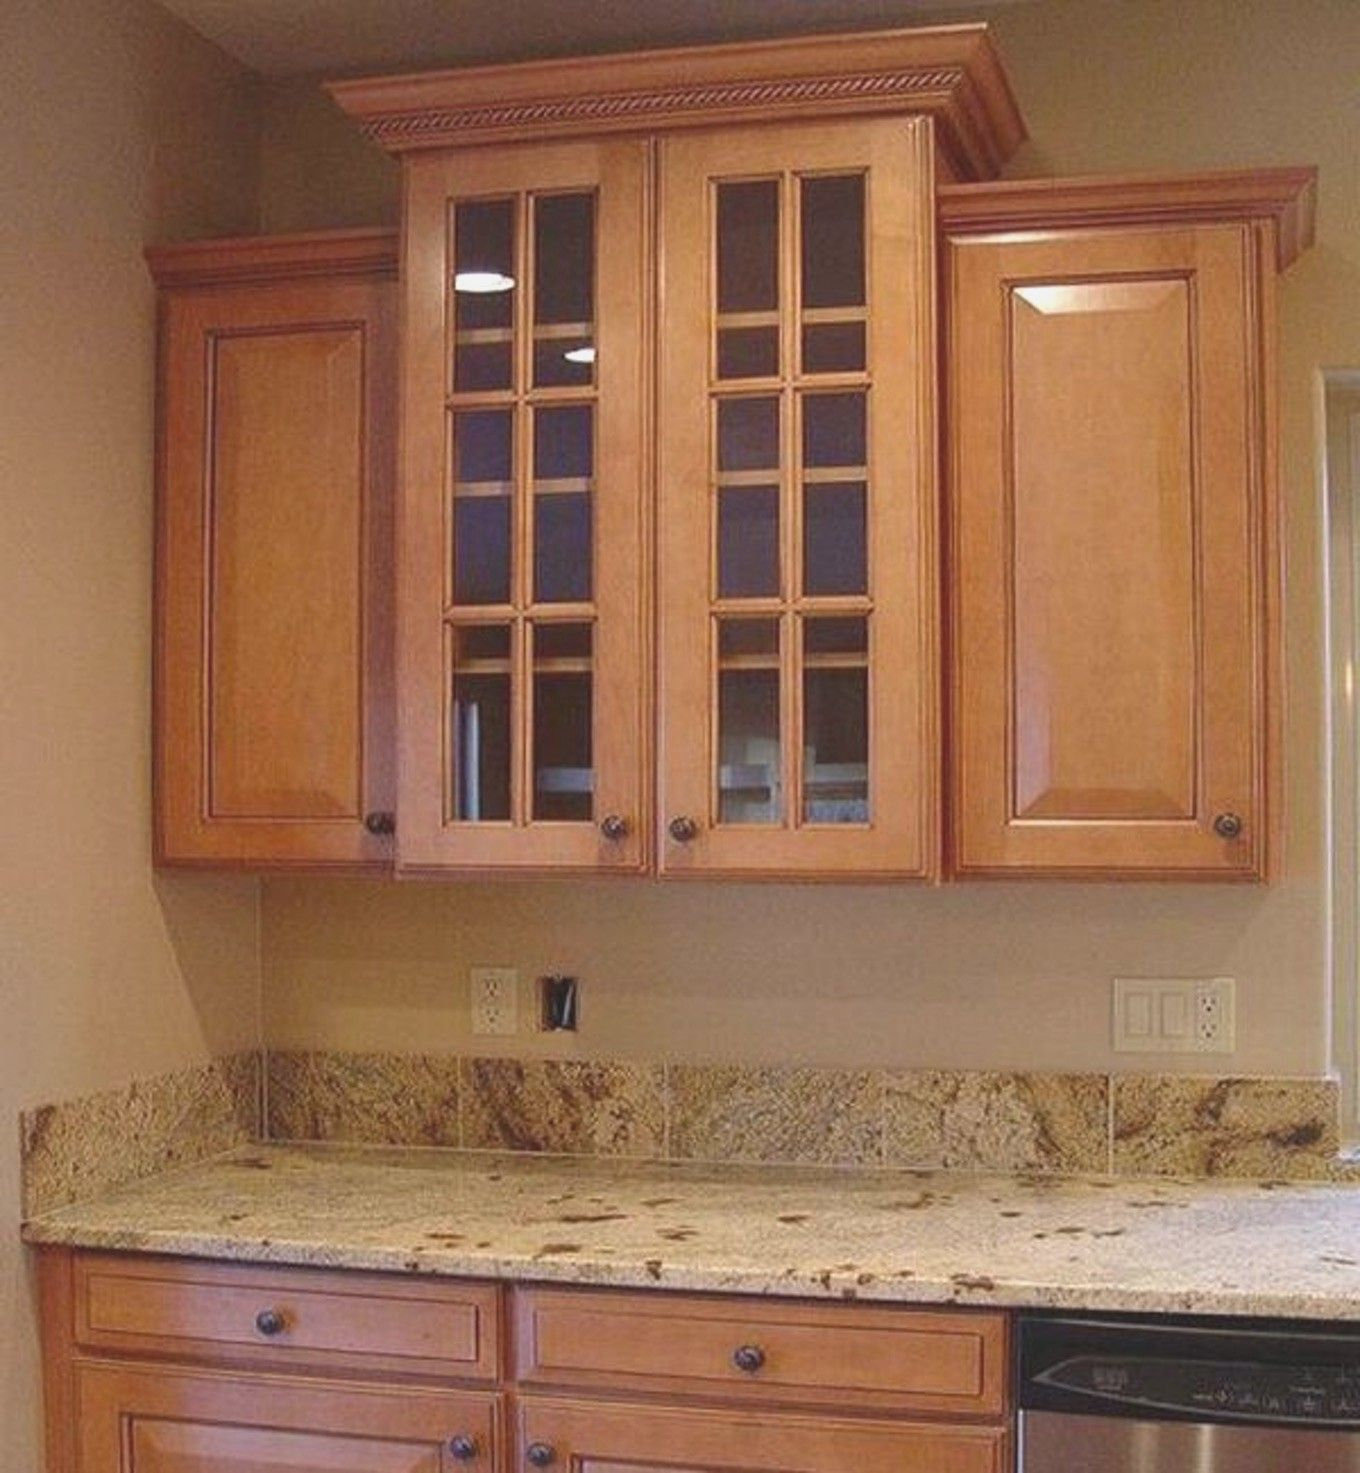 Kitchen Cabinets With Crown Molding How To Install Upper Kitchen Cabinets With Cr Kitchen Cabinet Crown Molding Upper Kitchen Cabinets Diy Kitchen Renovation